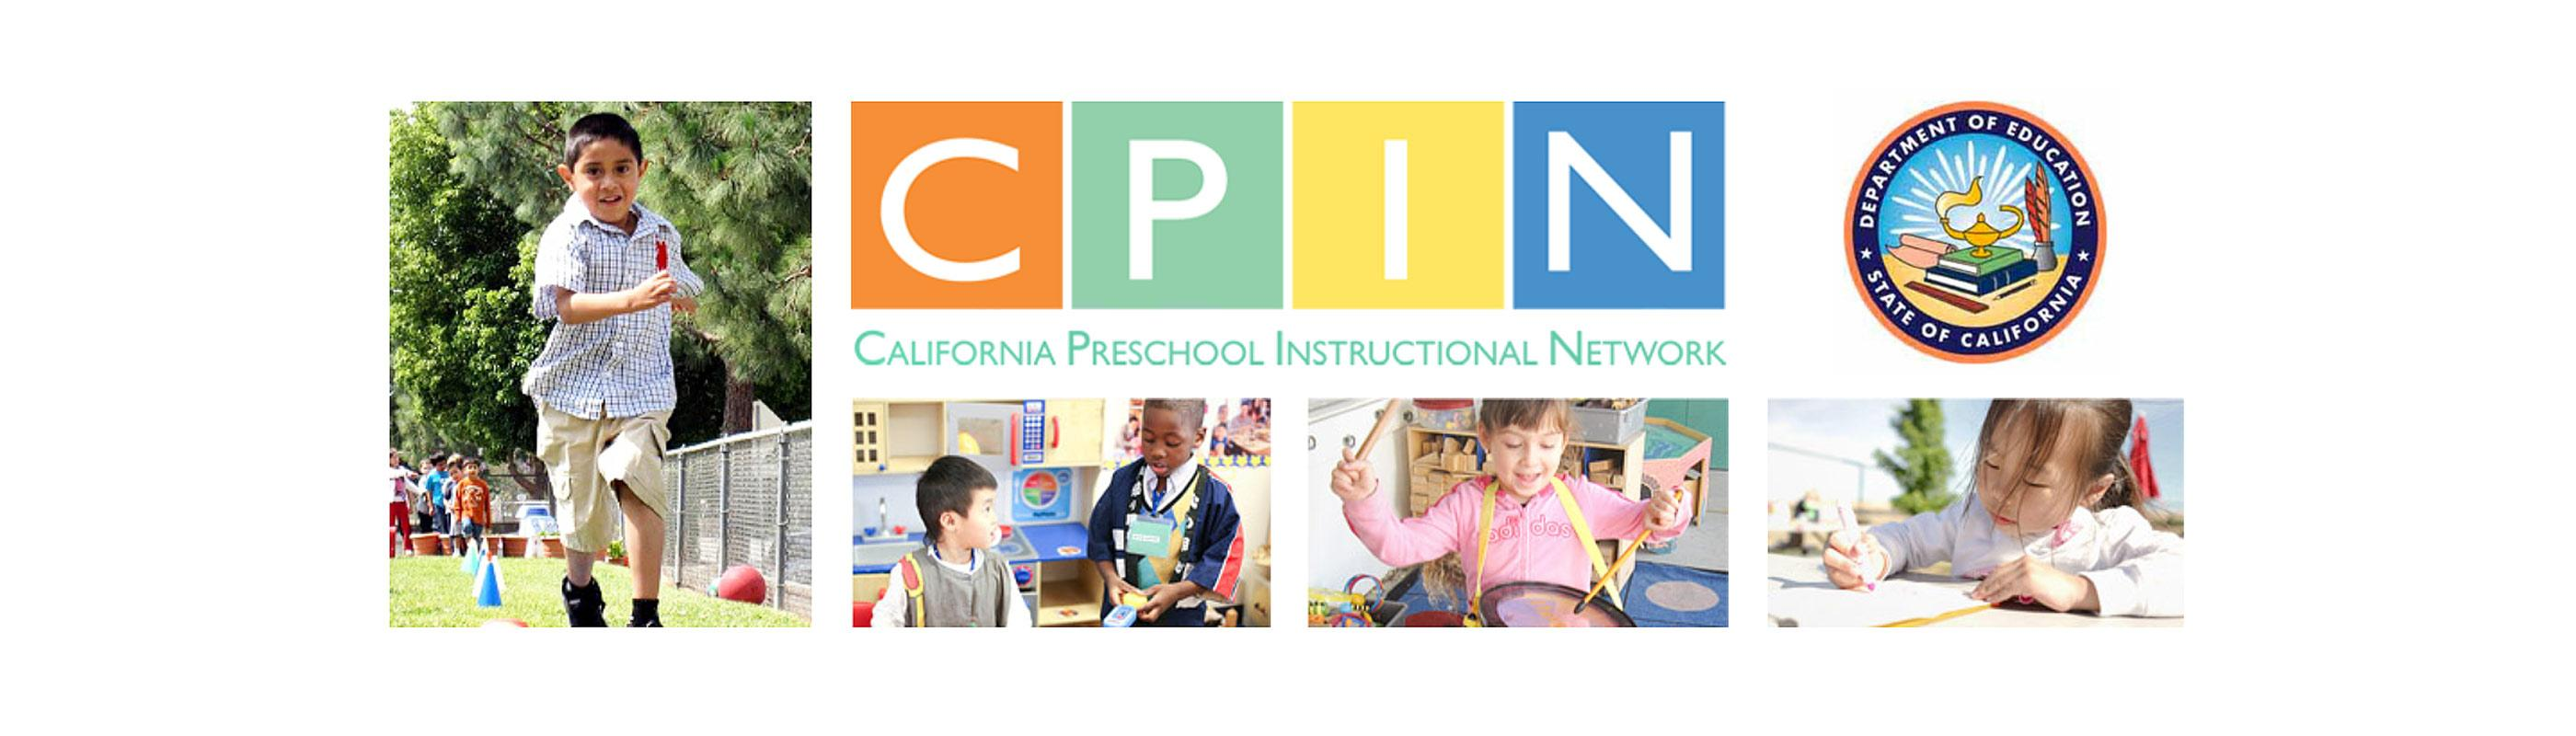 California Preschool Instructional Network (CPIN)